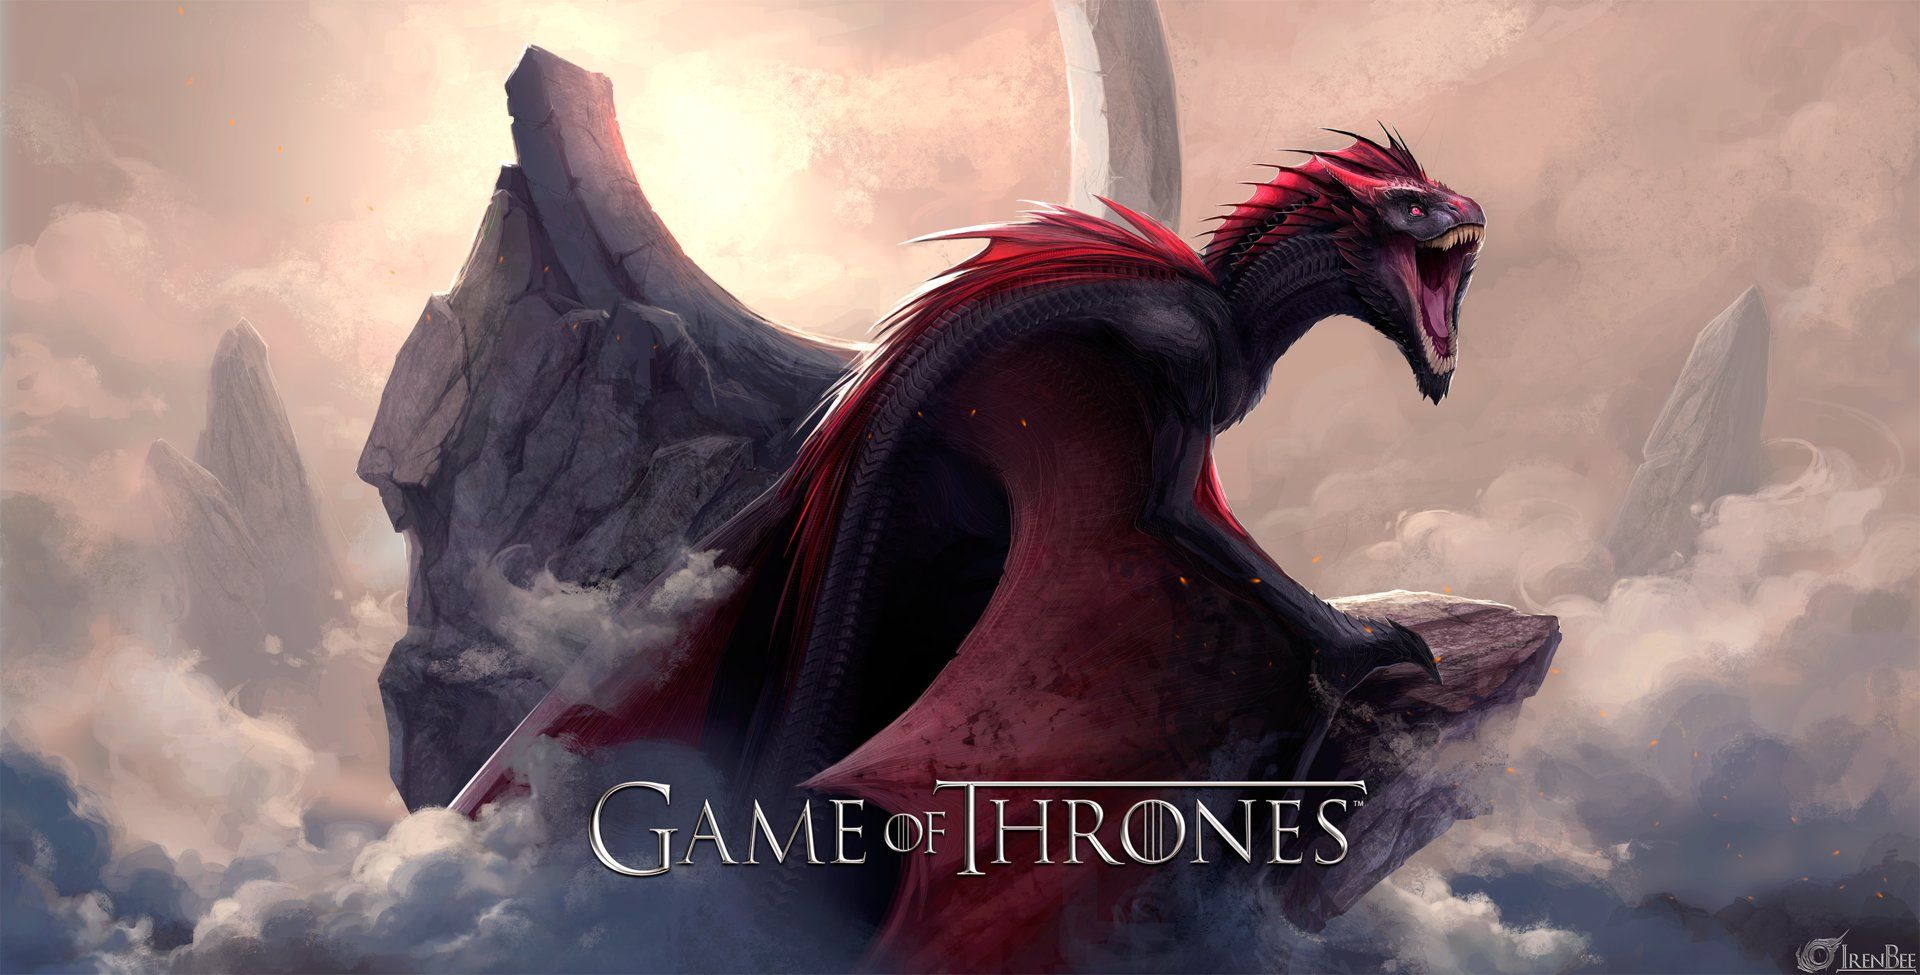 game of thrones background, drogon pics